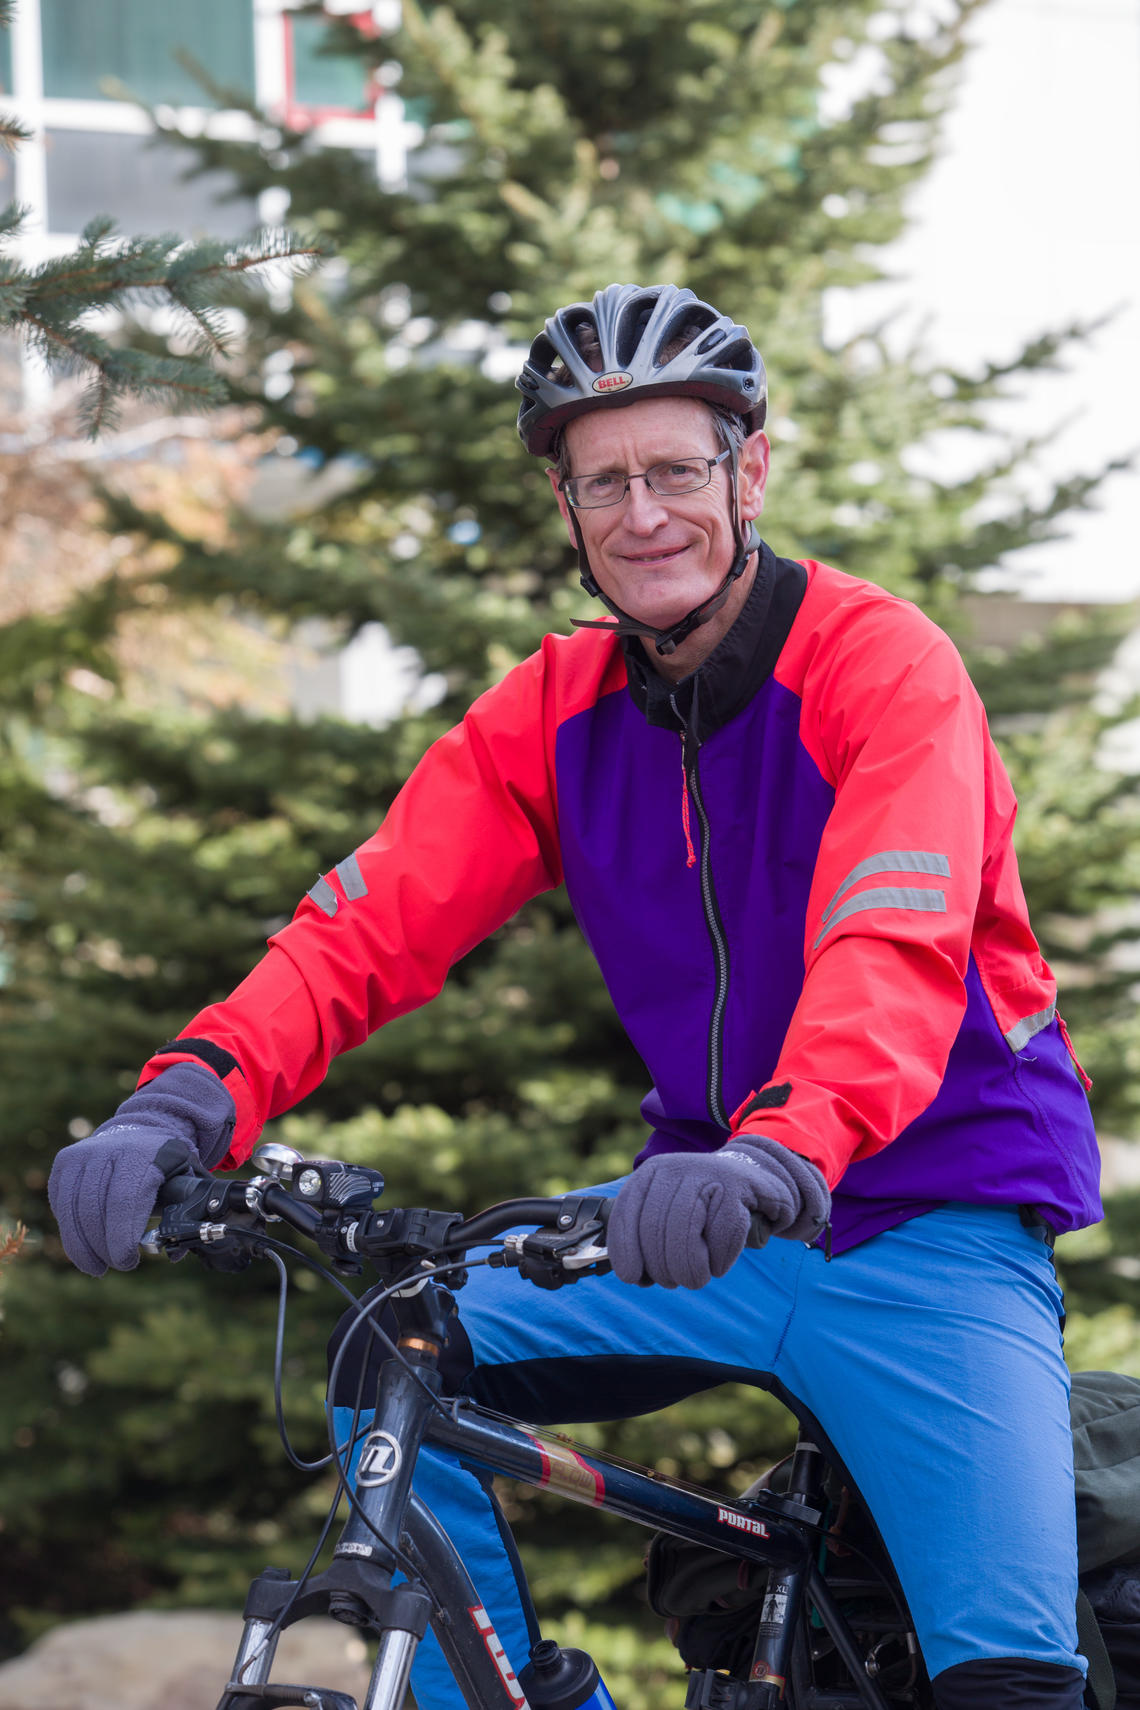 Steven Bryant, the first Canada Excellence Research Chair (CERC) at the University of Calgary, rides his bike to work.